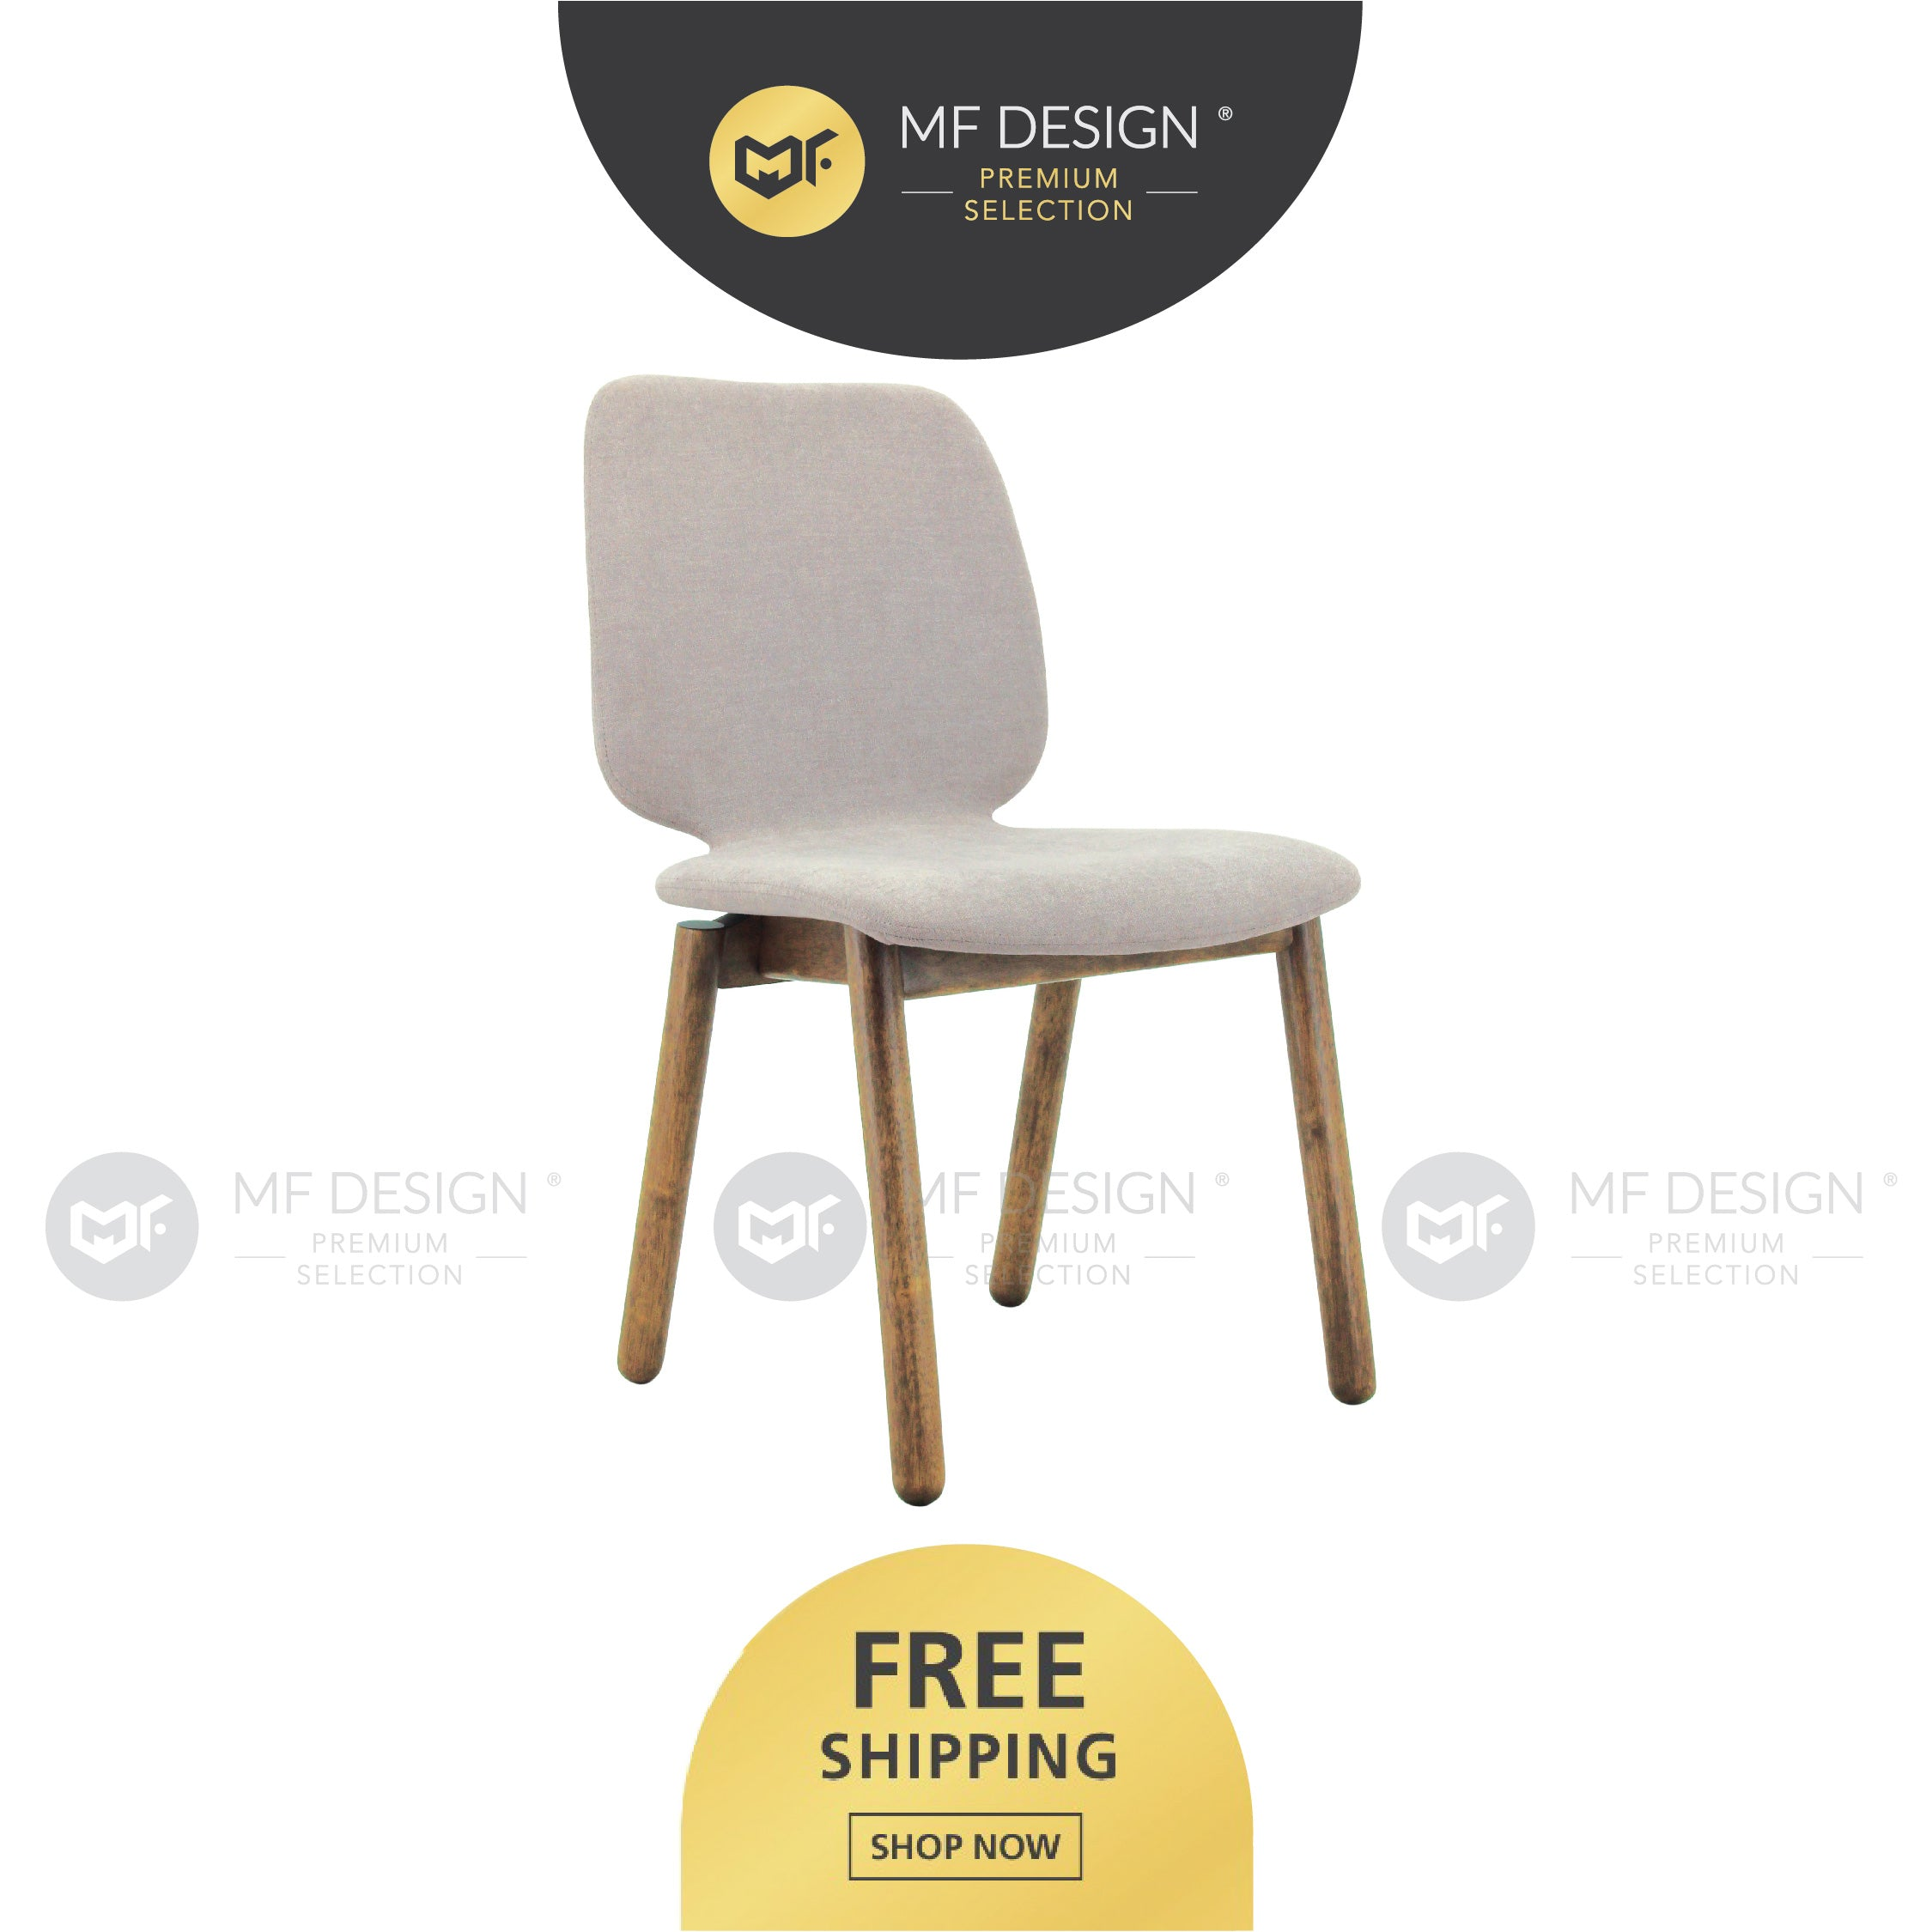 MFD Premium Mable Dining Chair  /Wooden Chair / Solid Rubber Wood / Kerusi Makan Kayu Getah / Living Room / Scandinavian